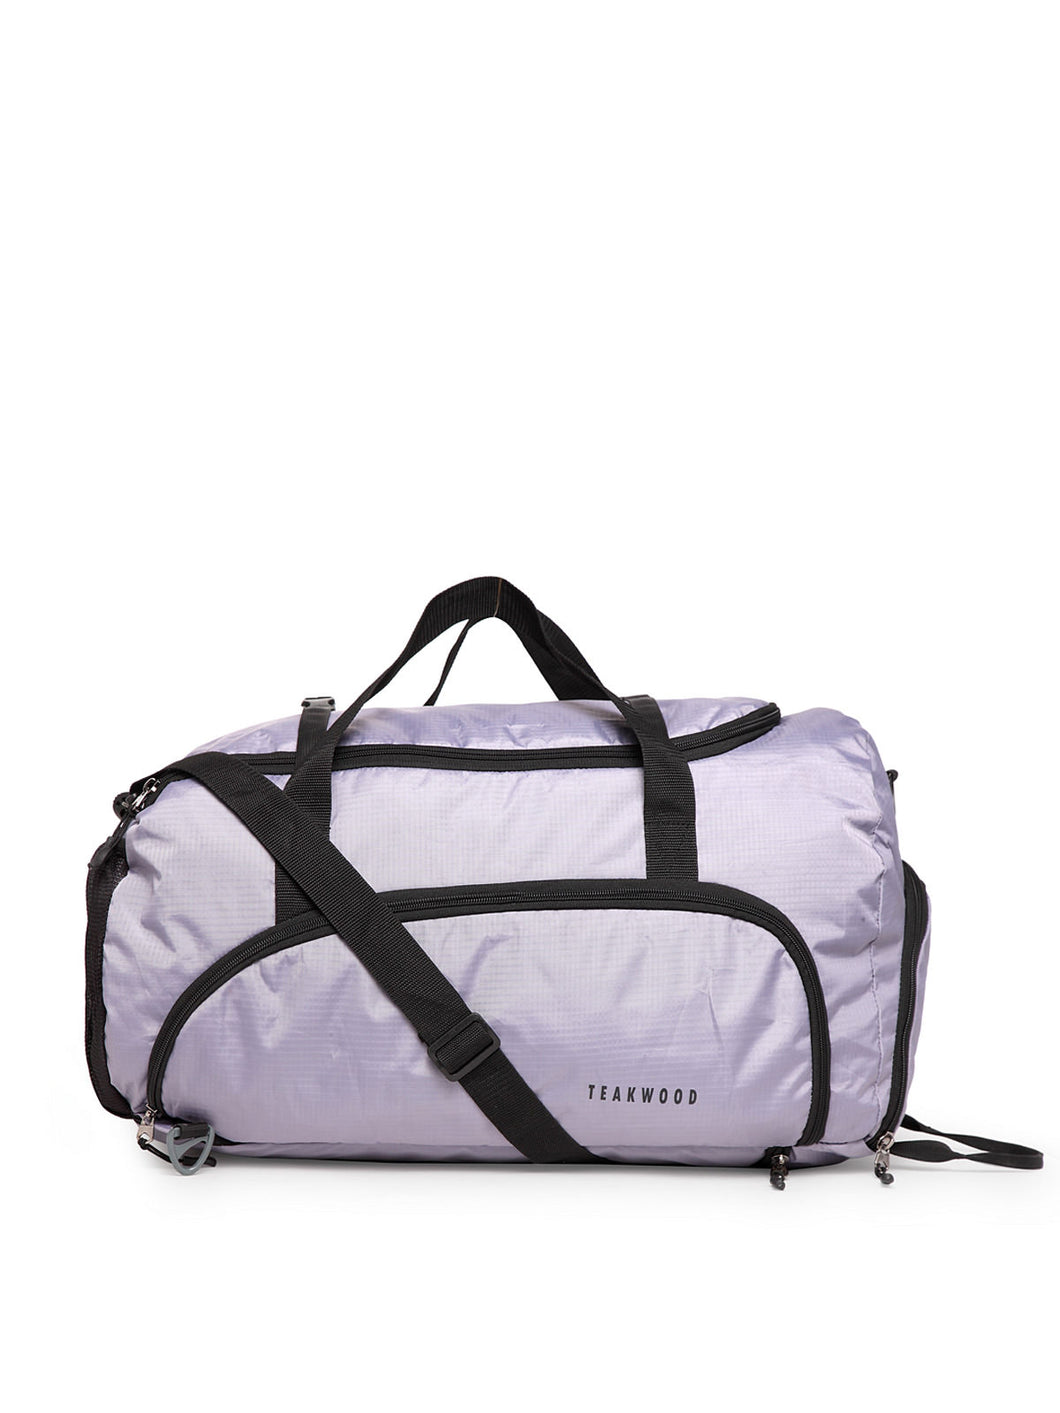 Teakwood Polyester Duffel Bag - Grey